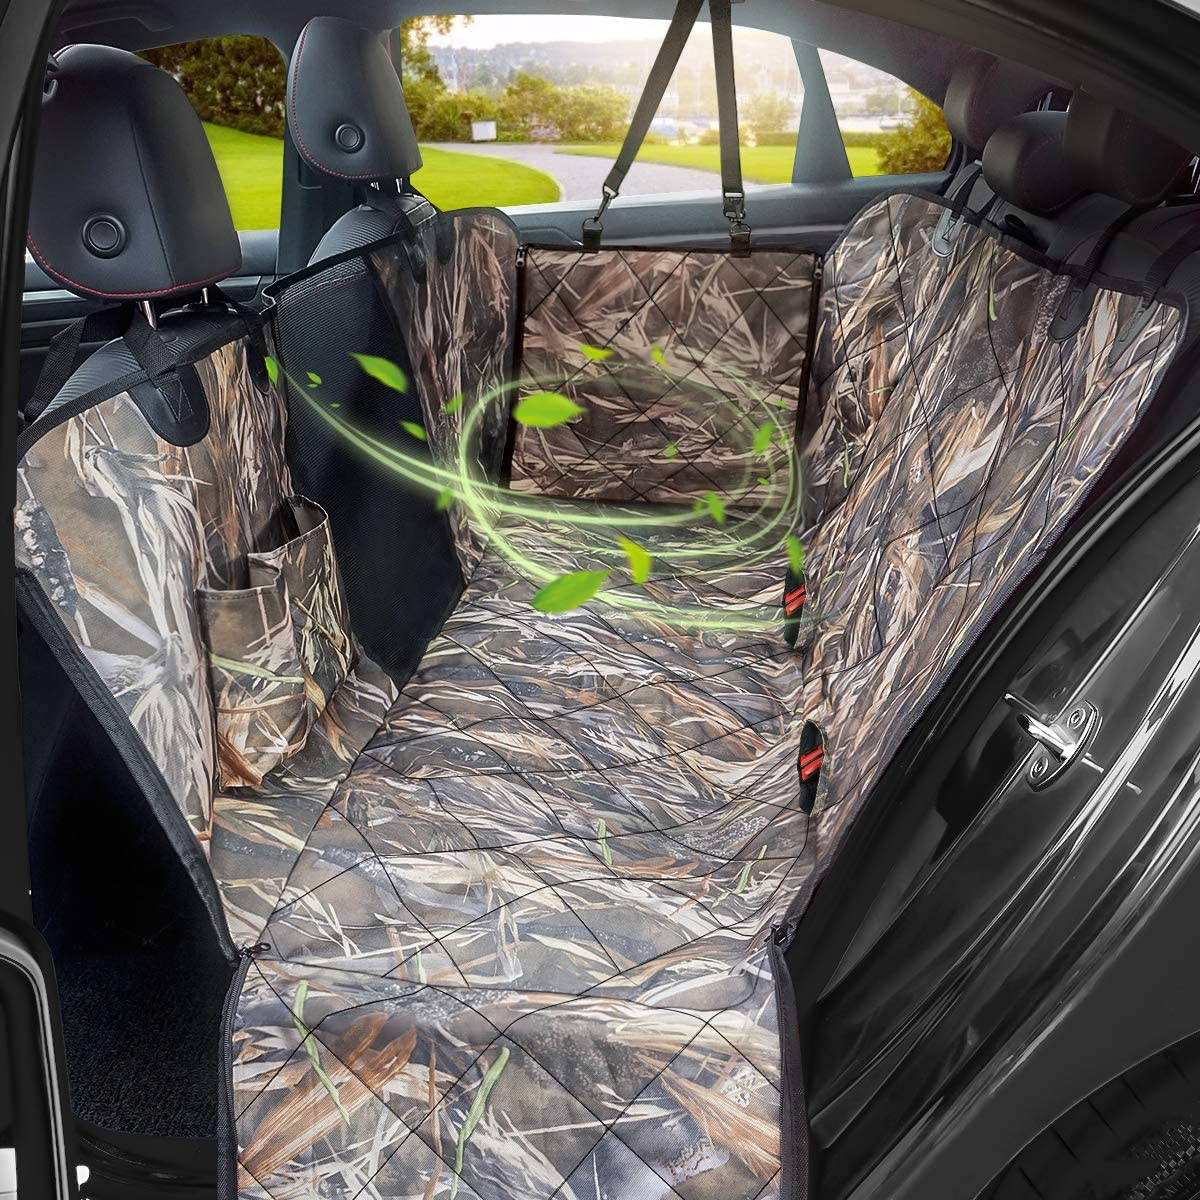 KIMHY Camo Dog Seat Cover for Pets, Car Back Seat Cover Hammock with Side Flaps, Mesh Window Storage Bag, 100 Waterproof Pet Seat Cover for Cars, SUV, Jeeps and Trucks